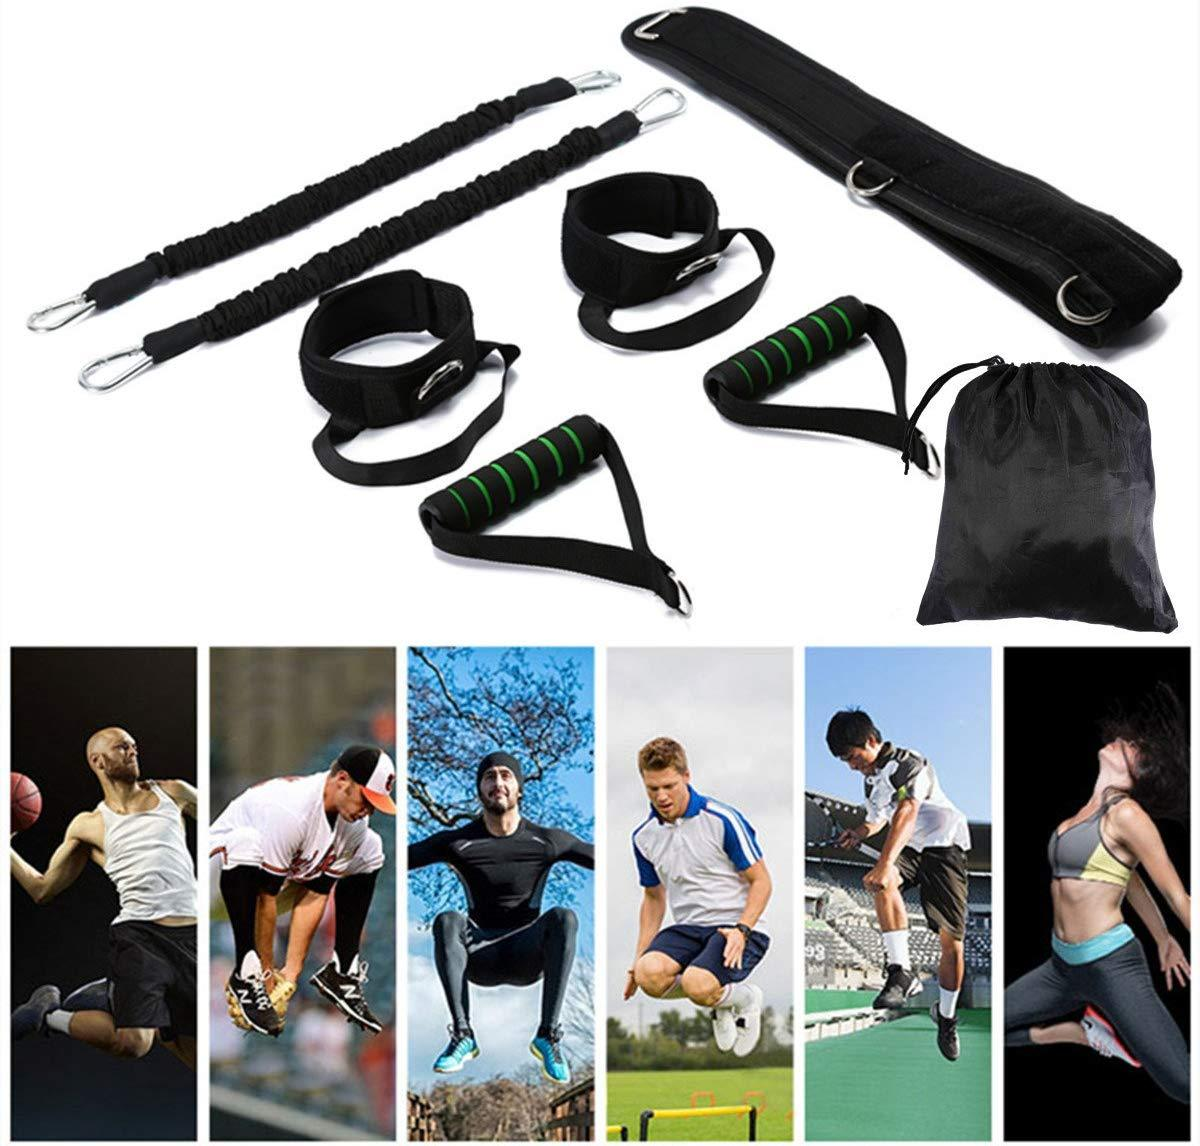 Bounce Trainer - Multi-Sport Jump, Speed & Strength Builder